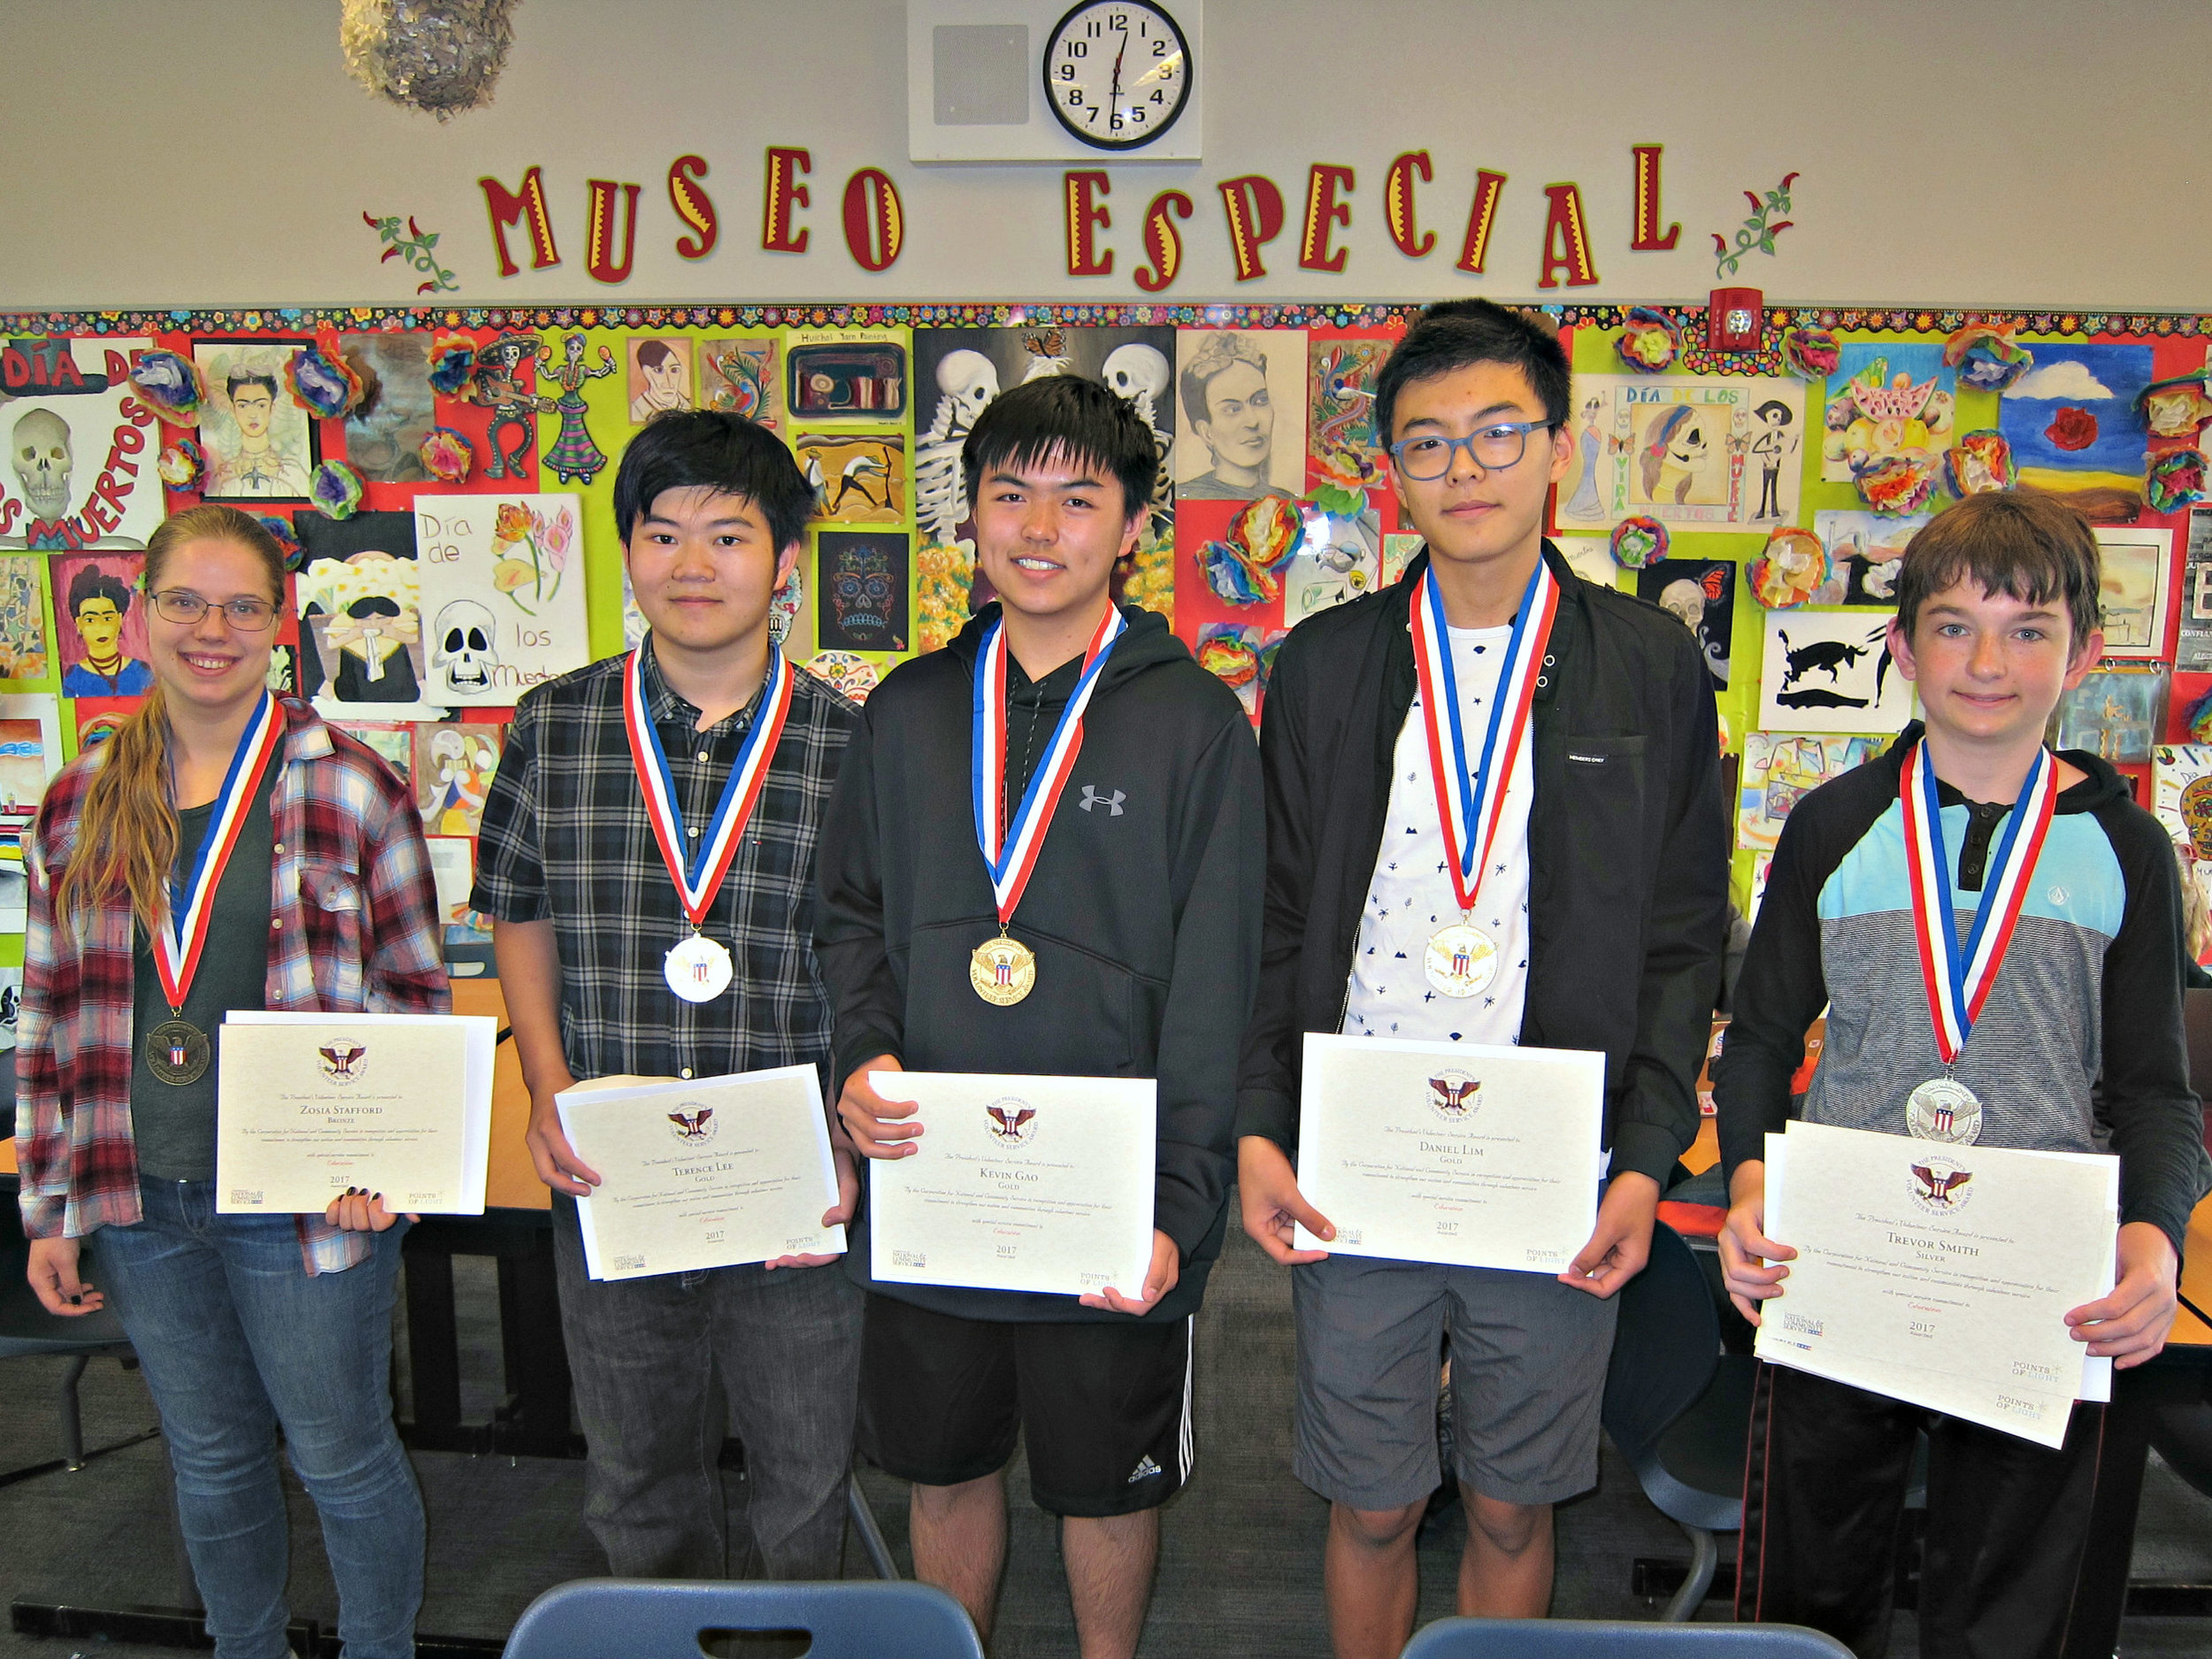 Zosia Stafford, Terence Lee, Kevin Gao, Daniel Lim, Trevor Smith (left to right)